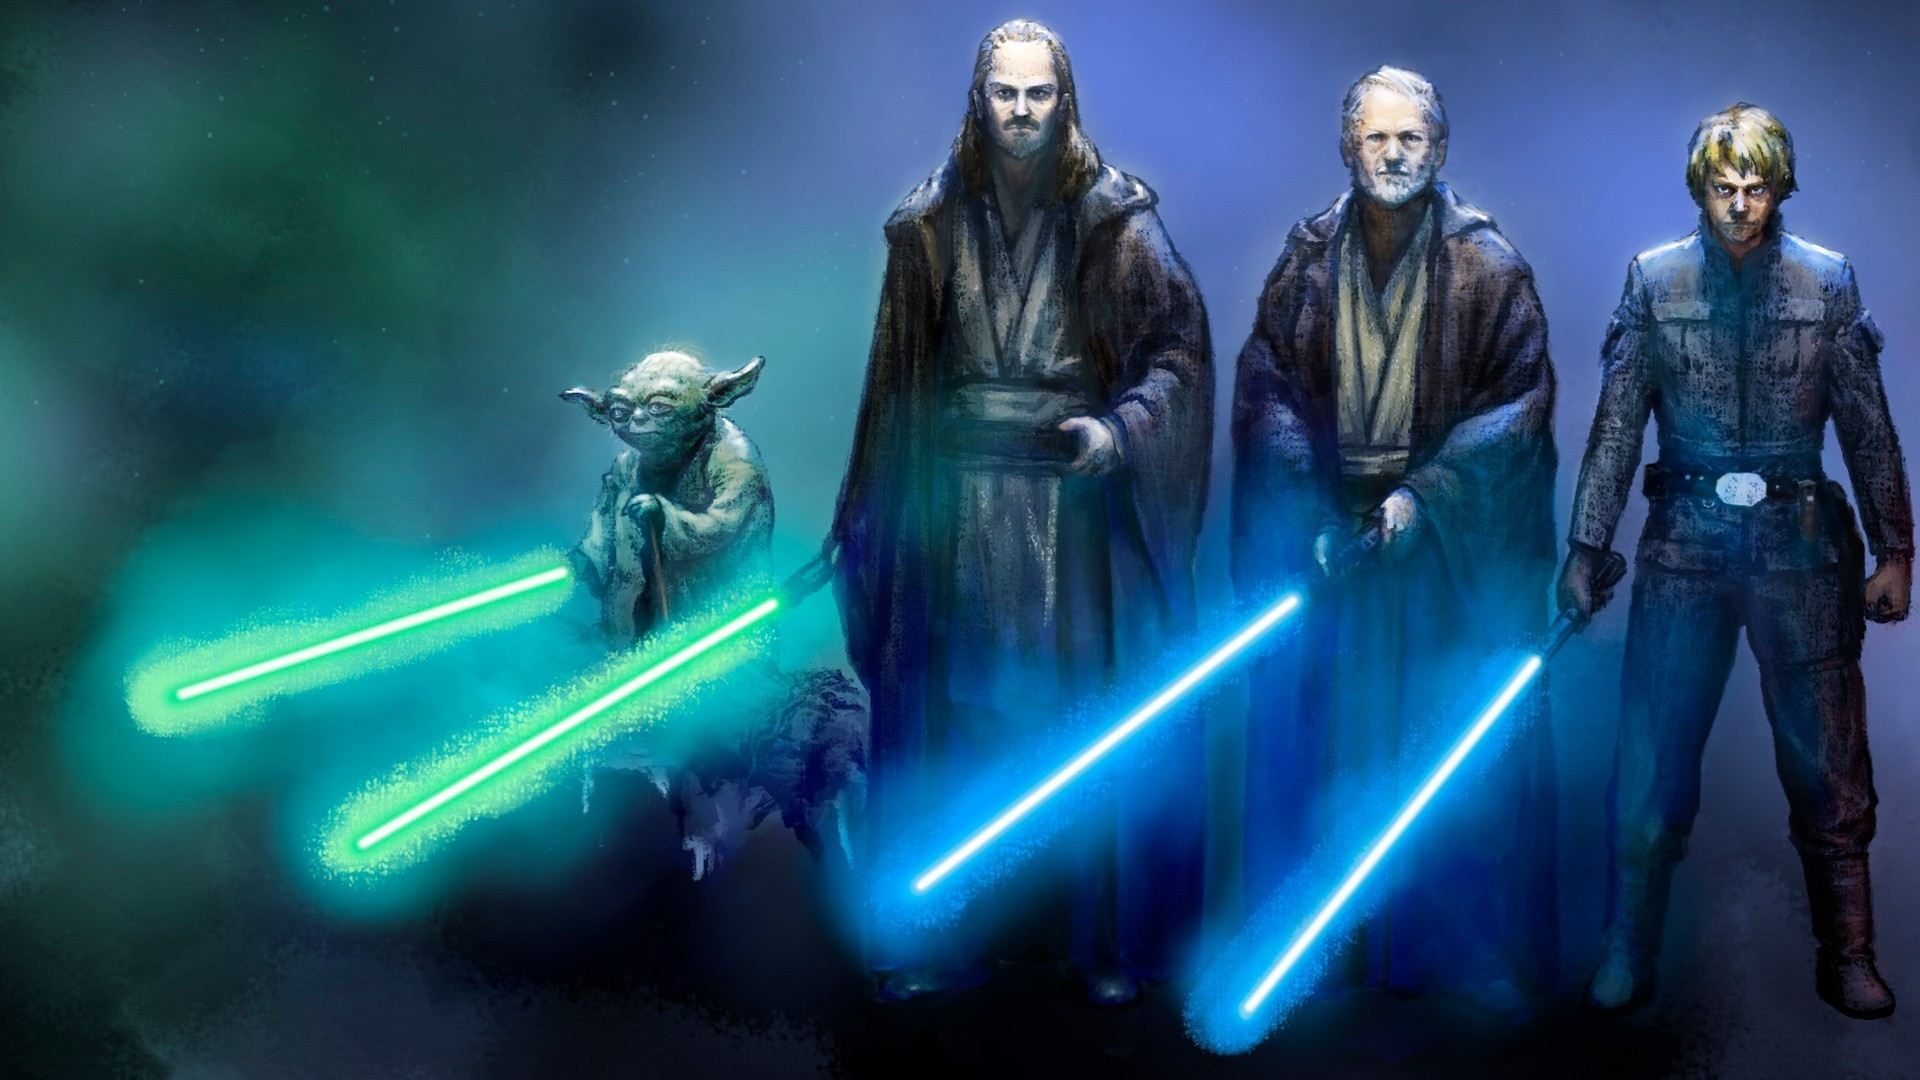 Epic Battle Wallpaper 1920 x 1080 Star Wars jedi HD 1920x1080